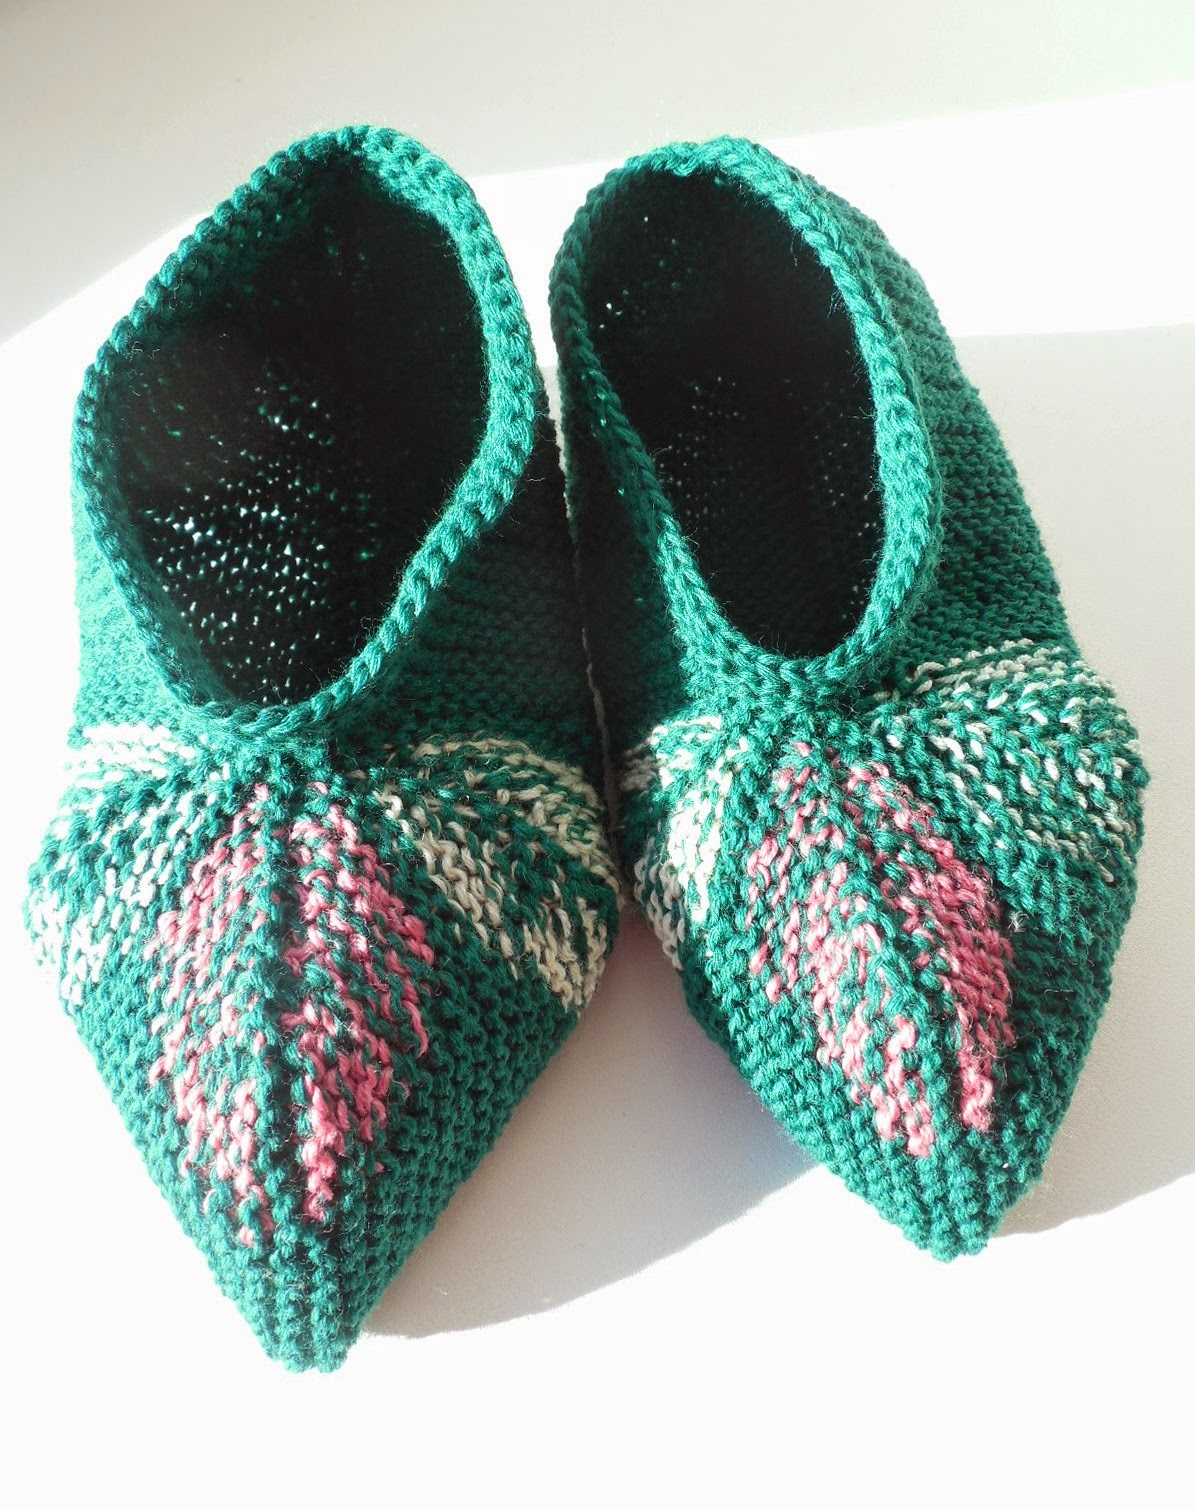 Knitting Patterns For Slippers : Socks Go Left: Three Leaves Knitted Slippers Pattern